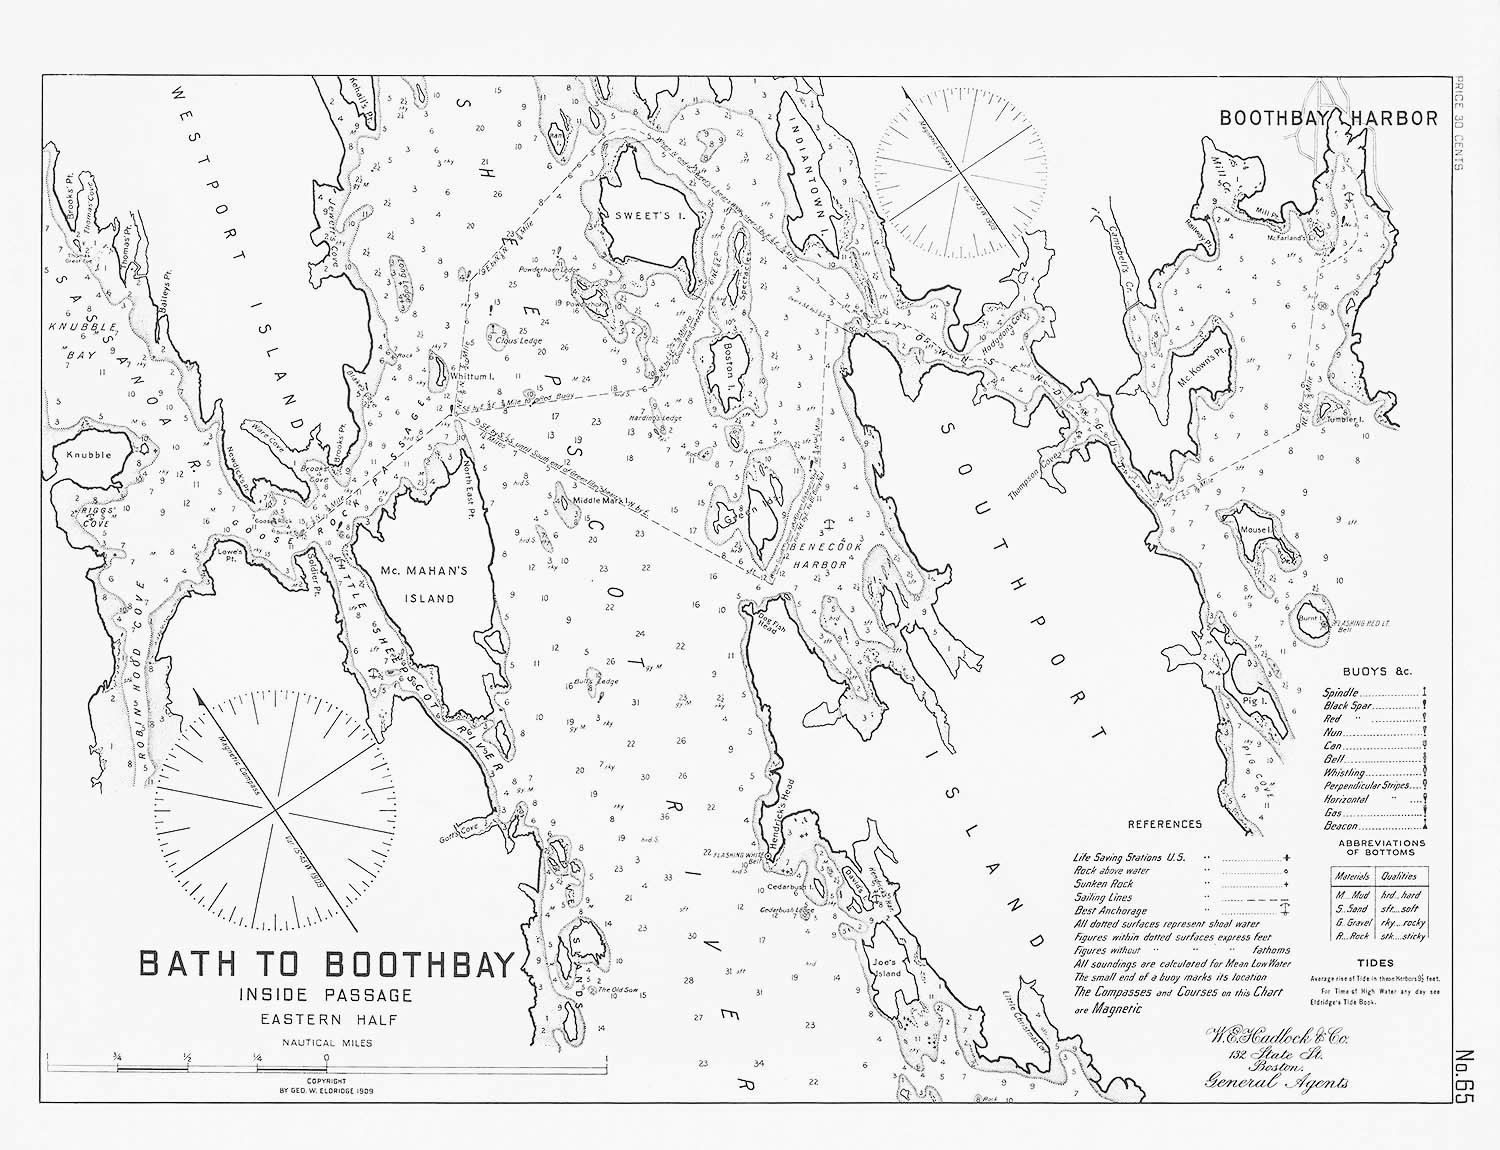 High tide chart maine choice image free any chart examples bath maine tide chart images free any chart examples bath to boothbay maine 1909 nautical chart nvjuhfo Gallery